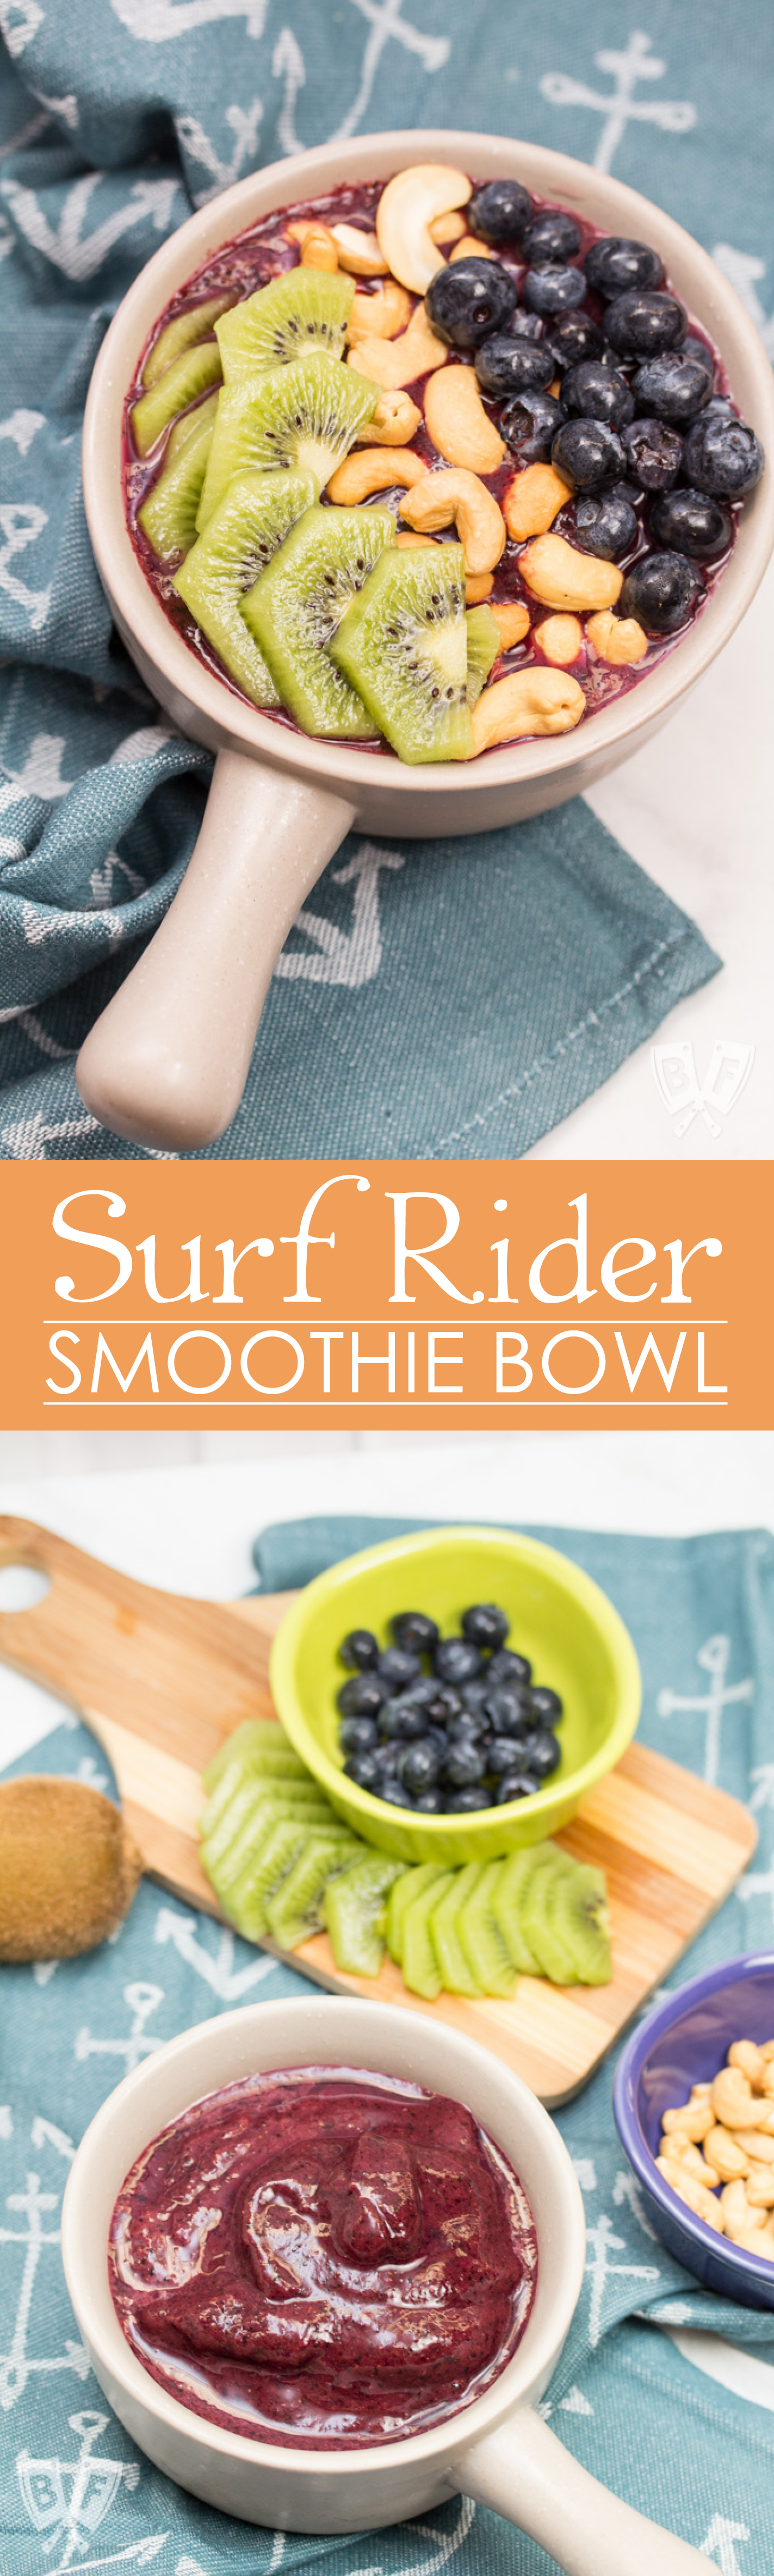 Surf Rider Smoothie Bowl: Green tea, raw cashews, kiwis and blueberries team up in this simple, delicious smoothie bowl. A vegan treat to start (or end!) any day of the week. Plus a review of Beautiful Smoothie Bowls by Carissa Bonham.